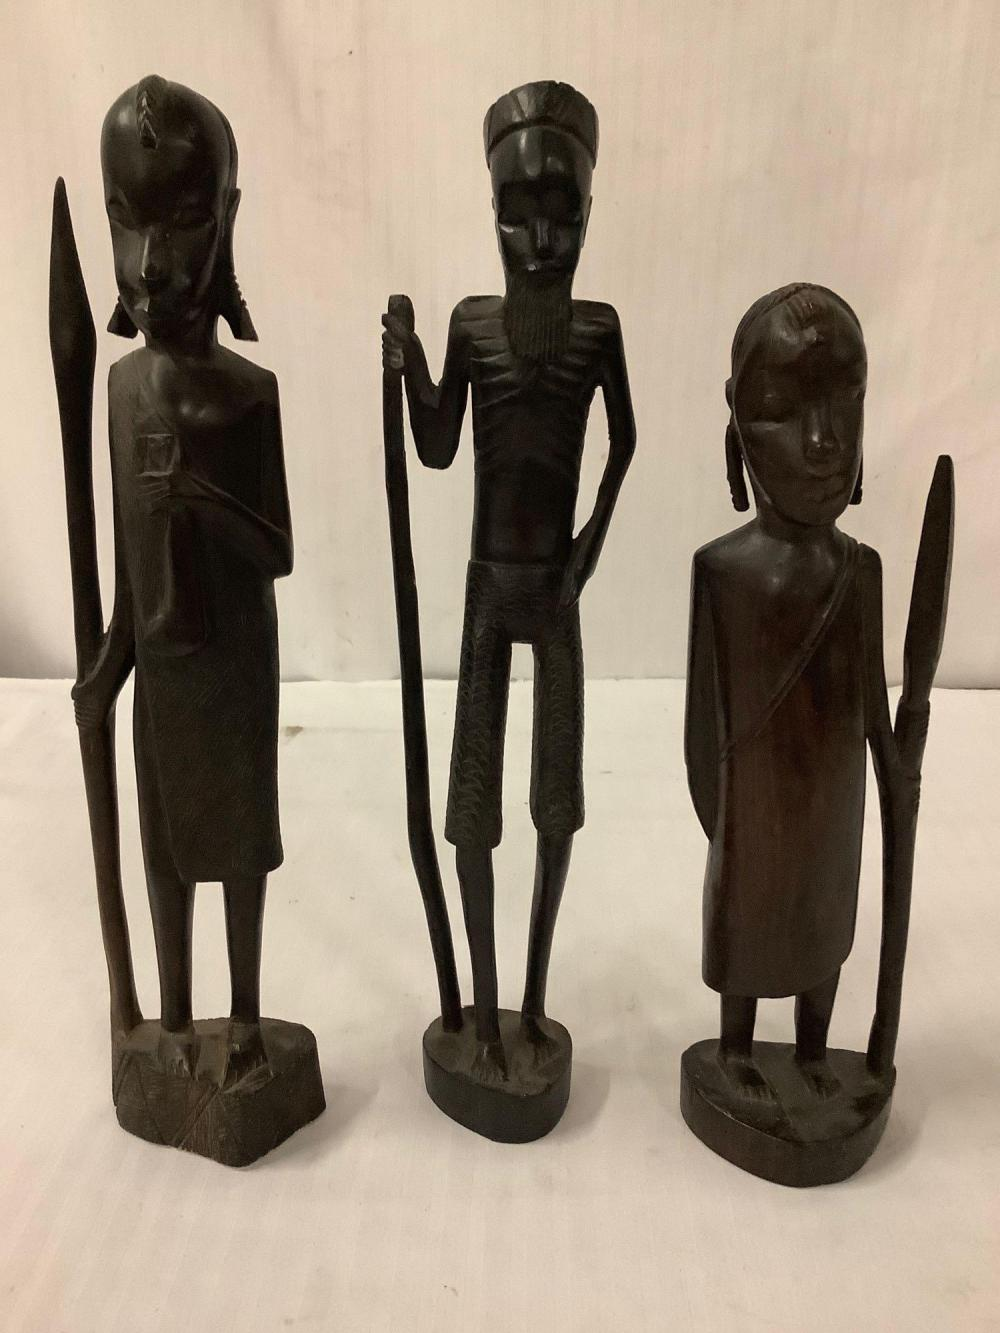 Lot 198: 3 hand carved African wood figure statues - classic tribal depiction